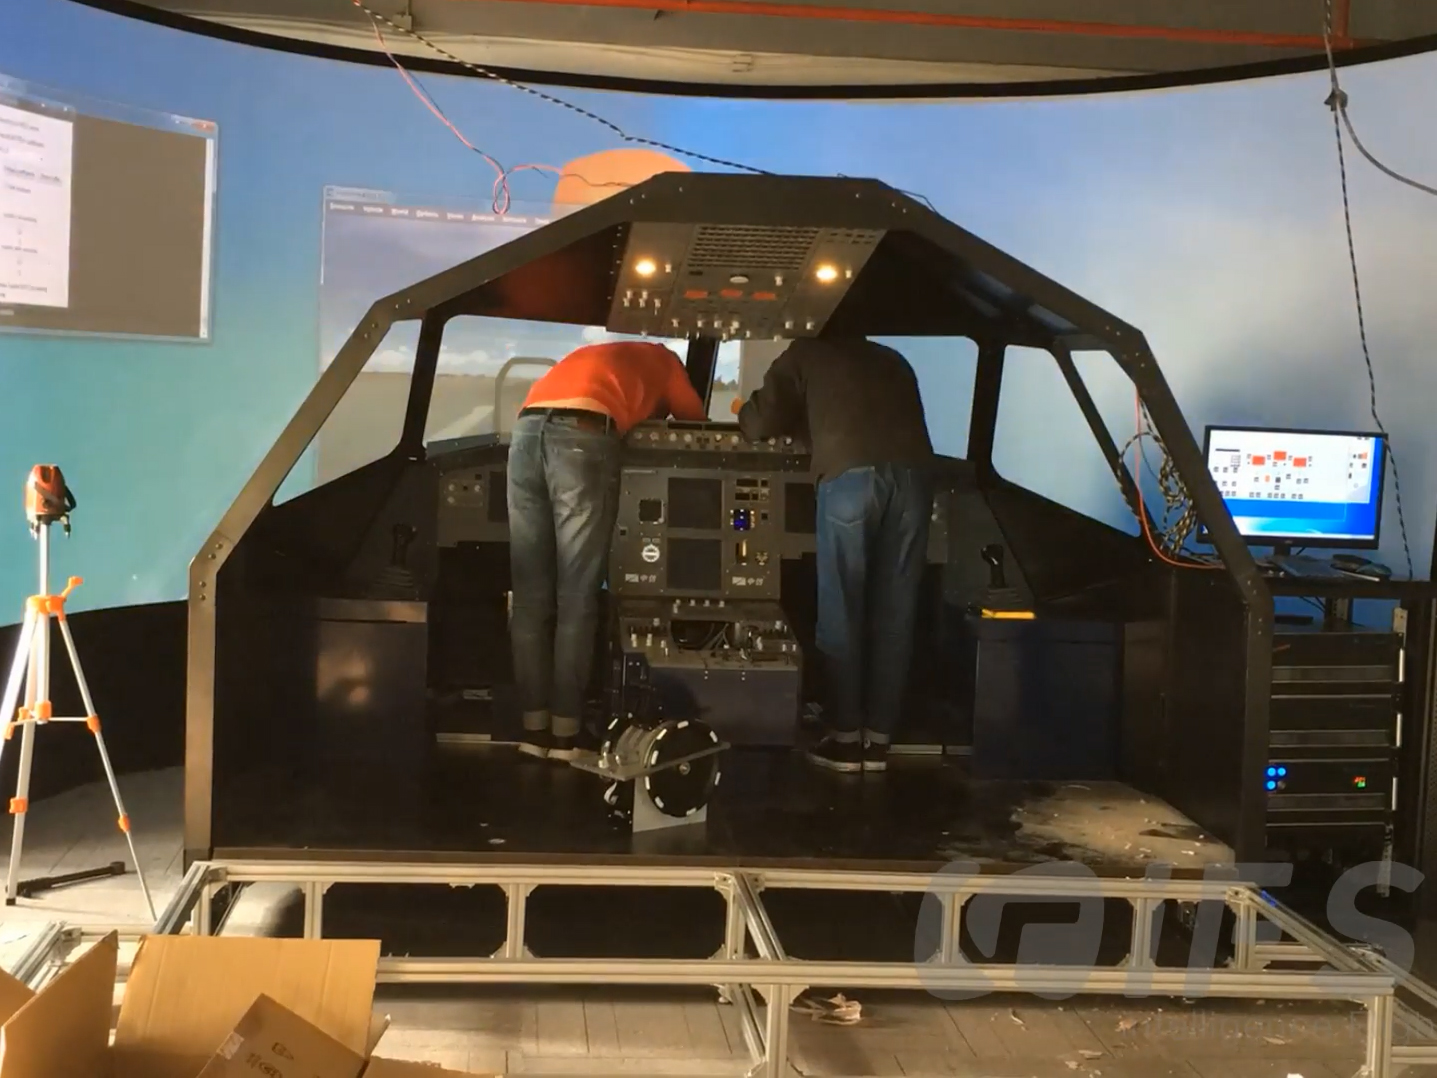 iFSim.A320 flight simulator Assembly Process